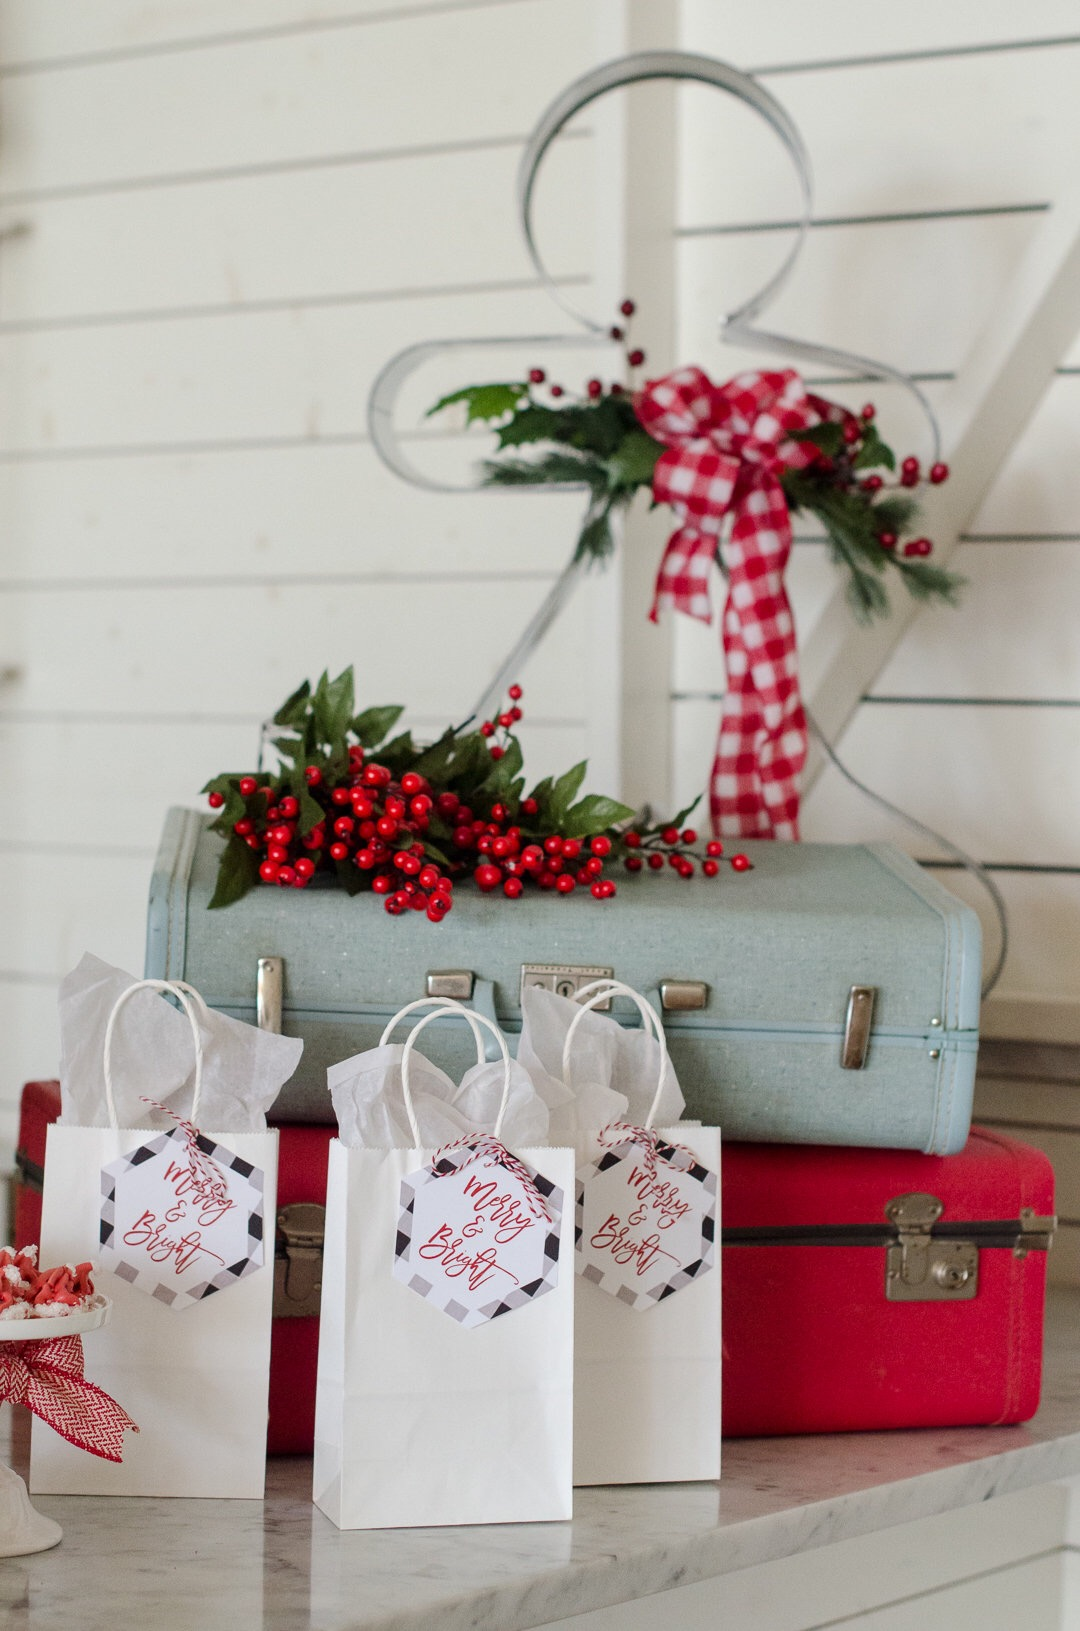 Love these buffalo print gift tags. See more holiday party inspiration from Austin based party stylist Mint Event Design at www.minteventdesign.com #holidayparty #holidays #partyideas #christmasparty #holidaypartyideas #buffaloplaid